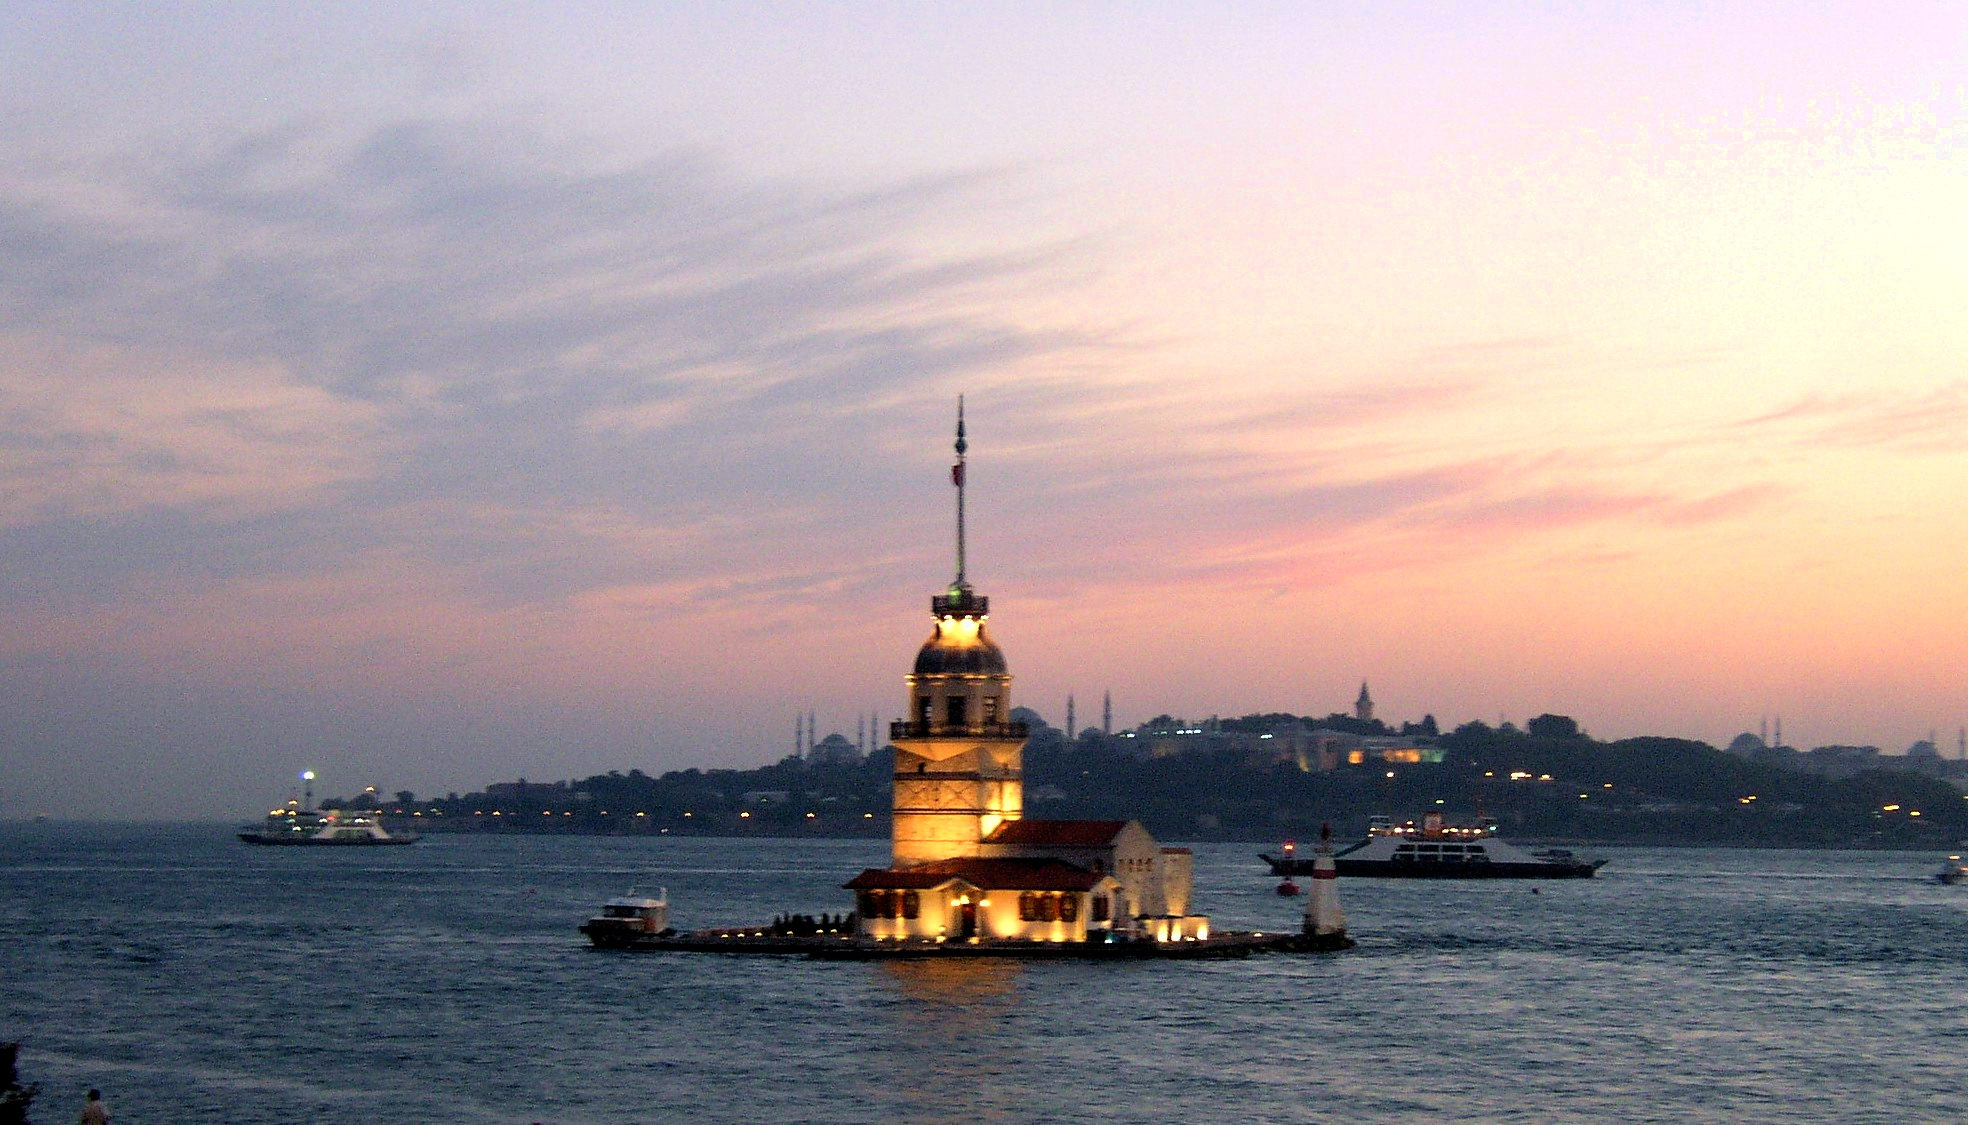 File:Istanbul da Üsküdar.jpg - Wikipedia, the free encyclopedia